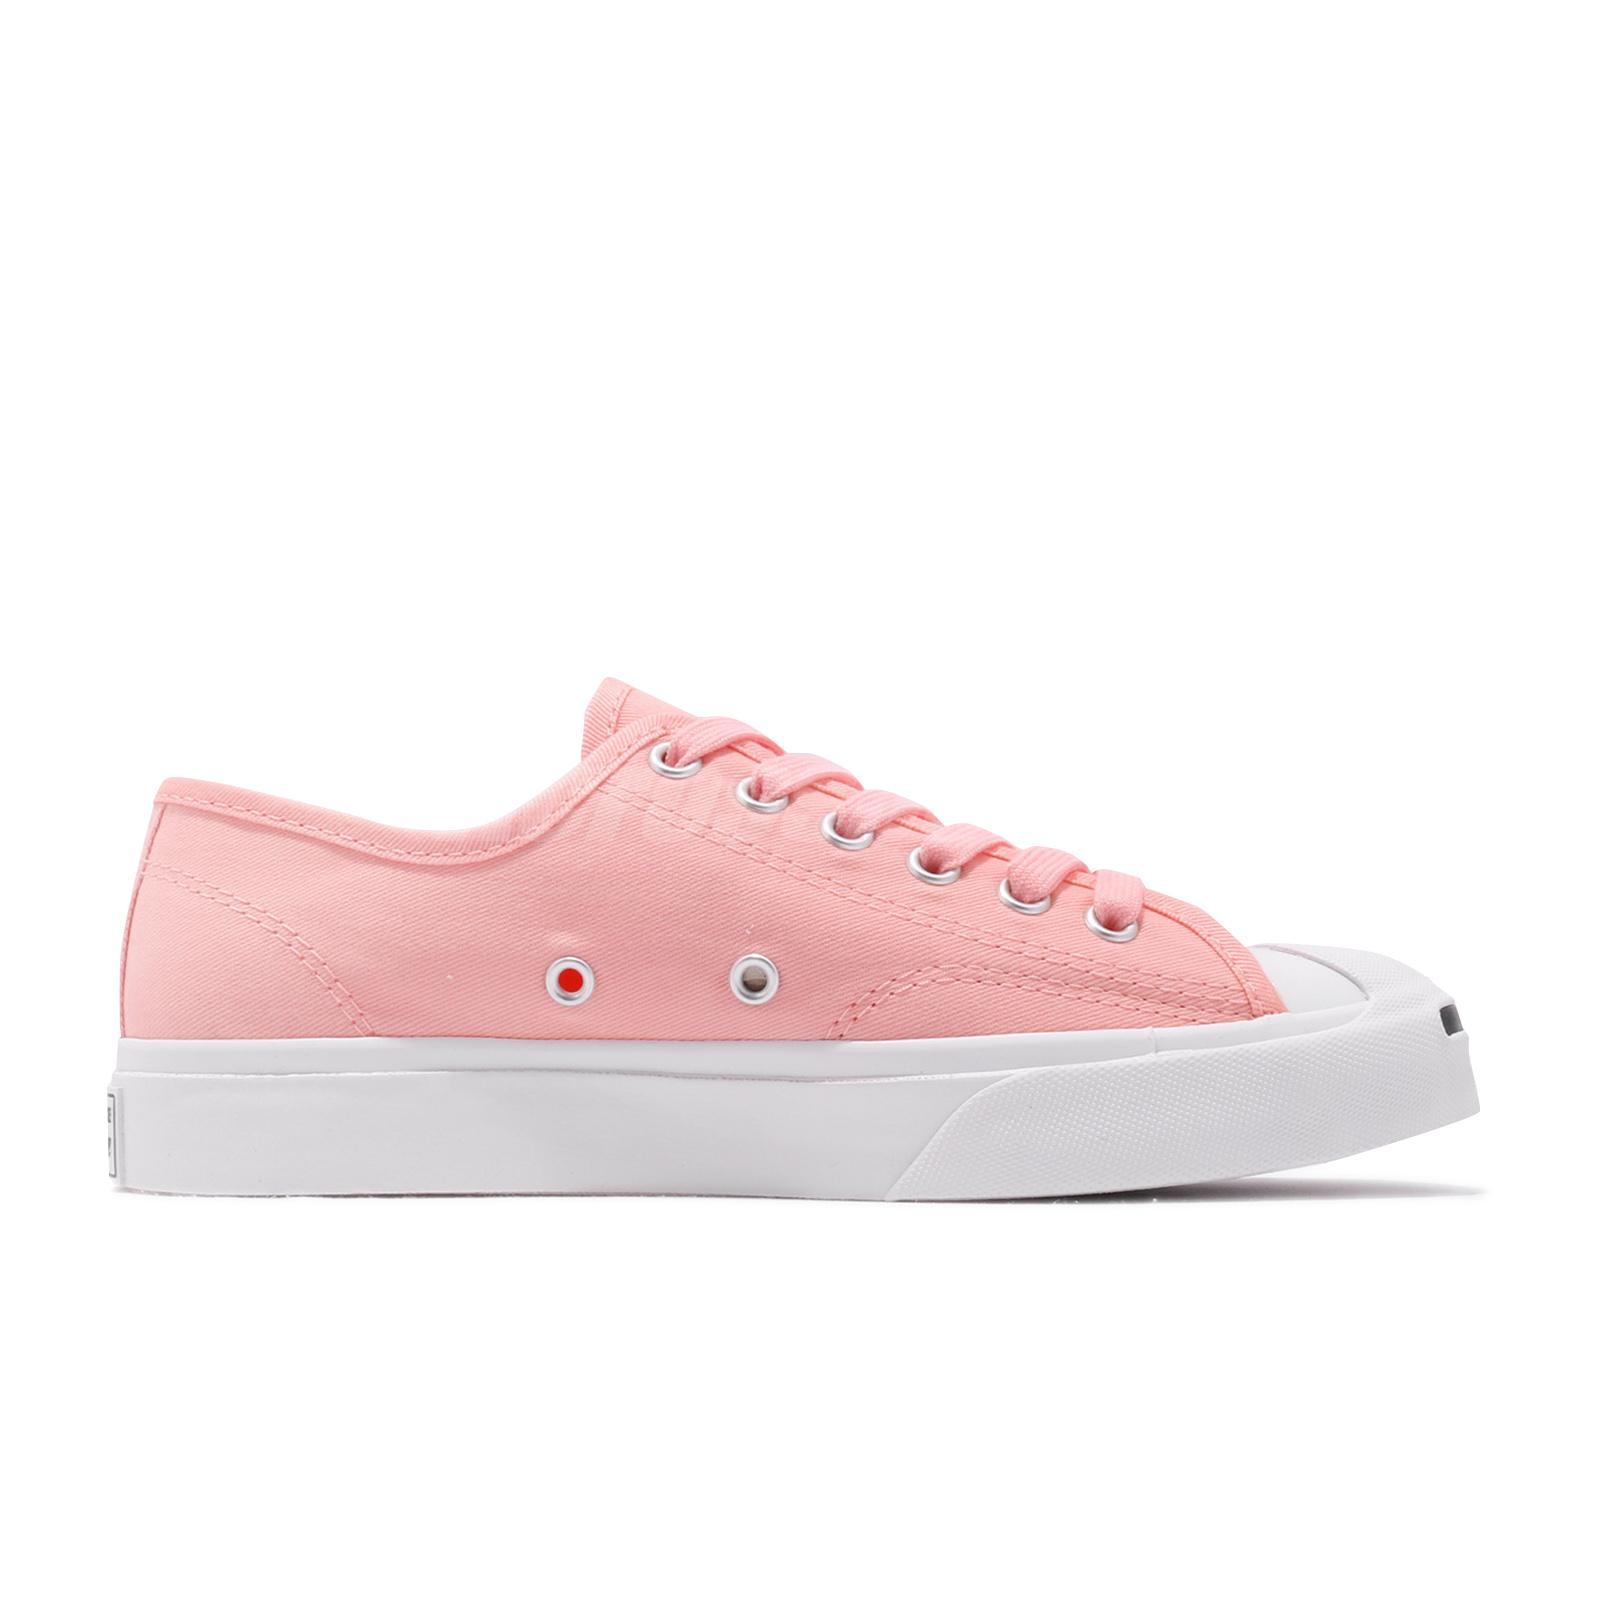 641dff80b56e Converse Jack Purcell Pink White Mens Womens Classic Casual Shoes ...